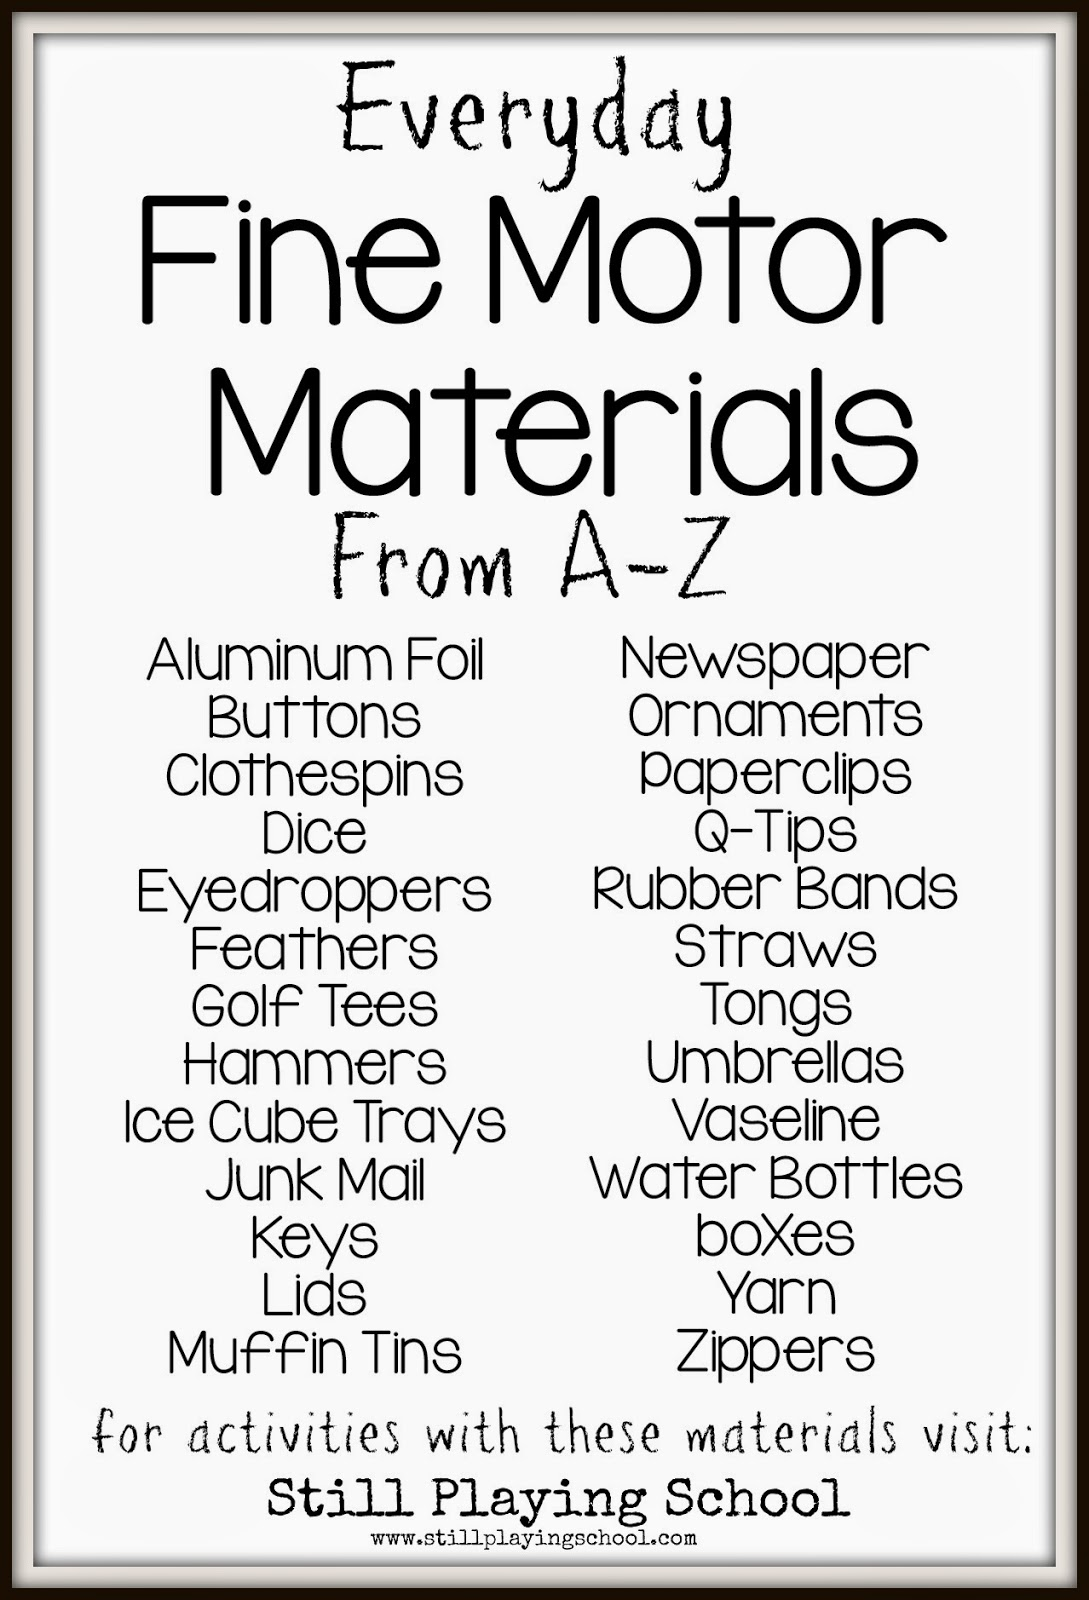 Everyday Fine Motor Materials From A To Z